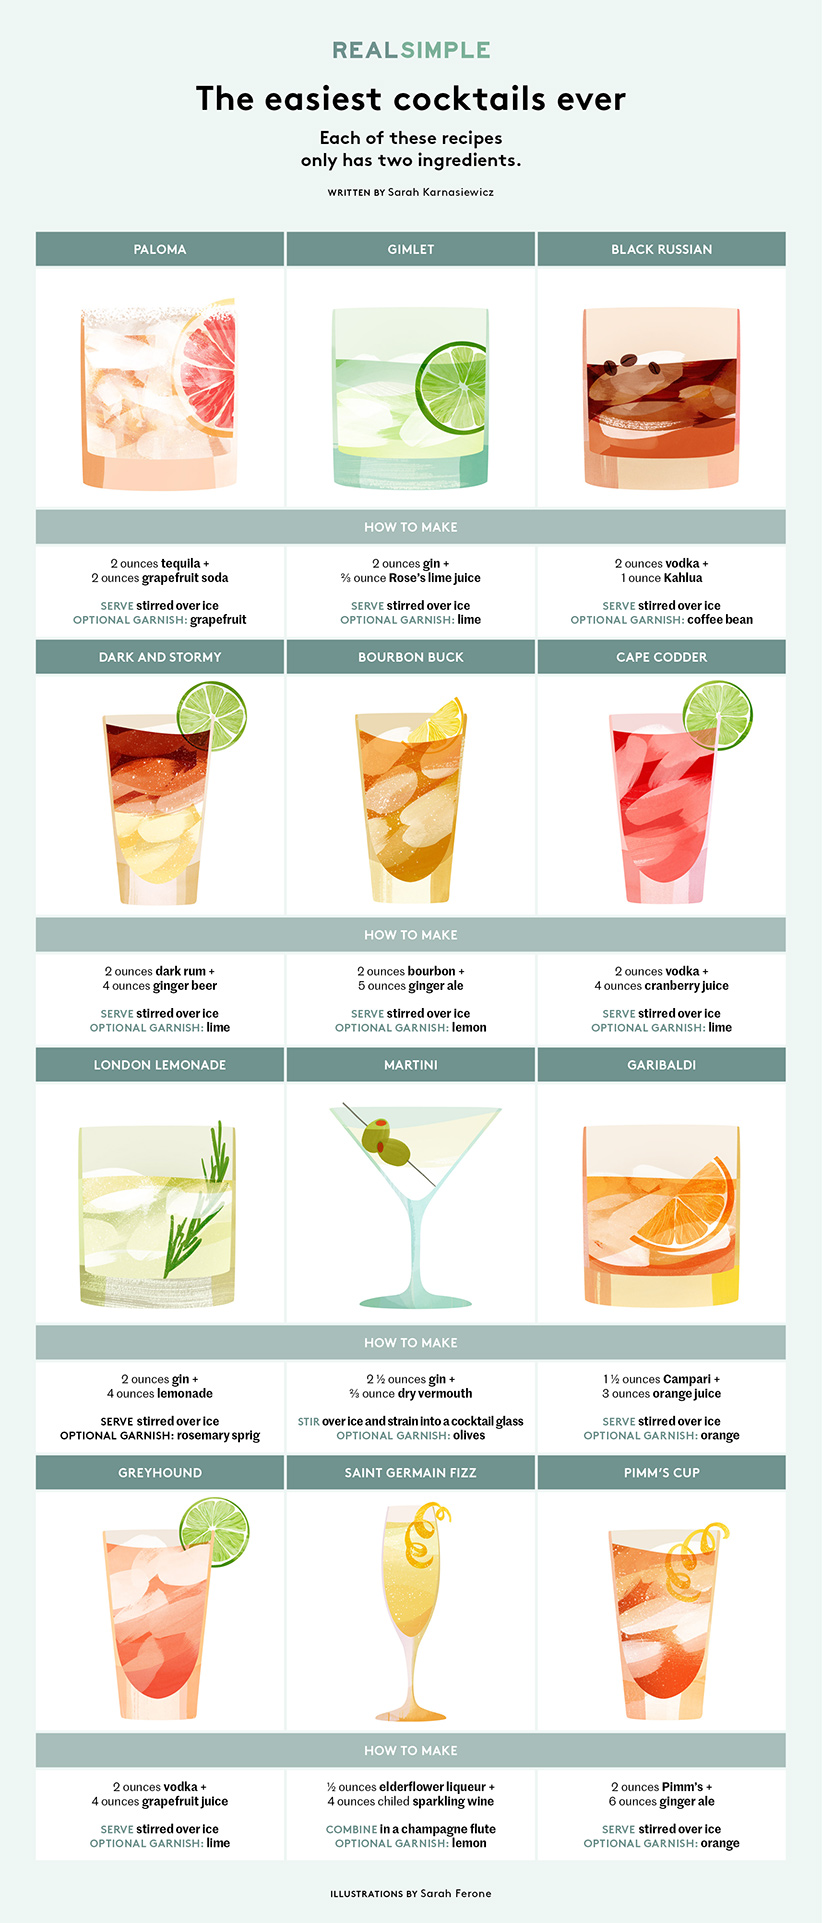 The Easiest Cocktails Ever